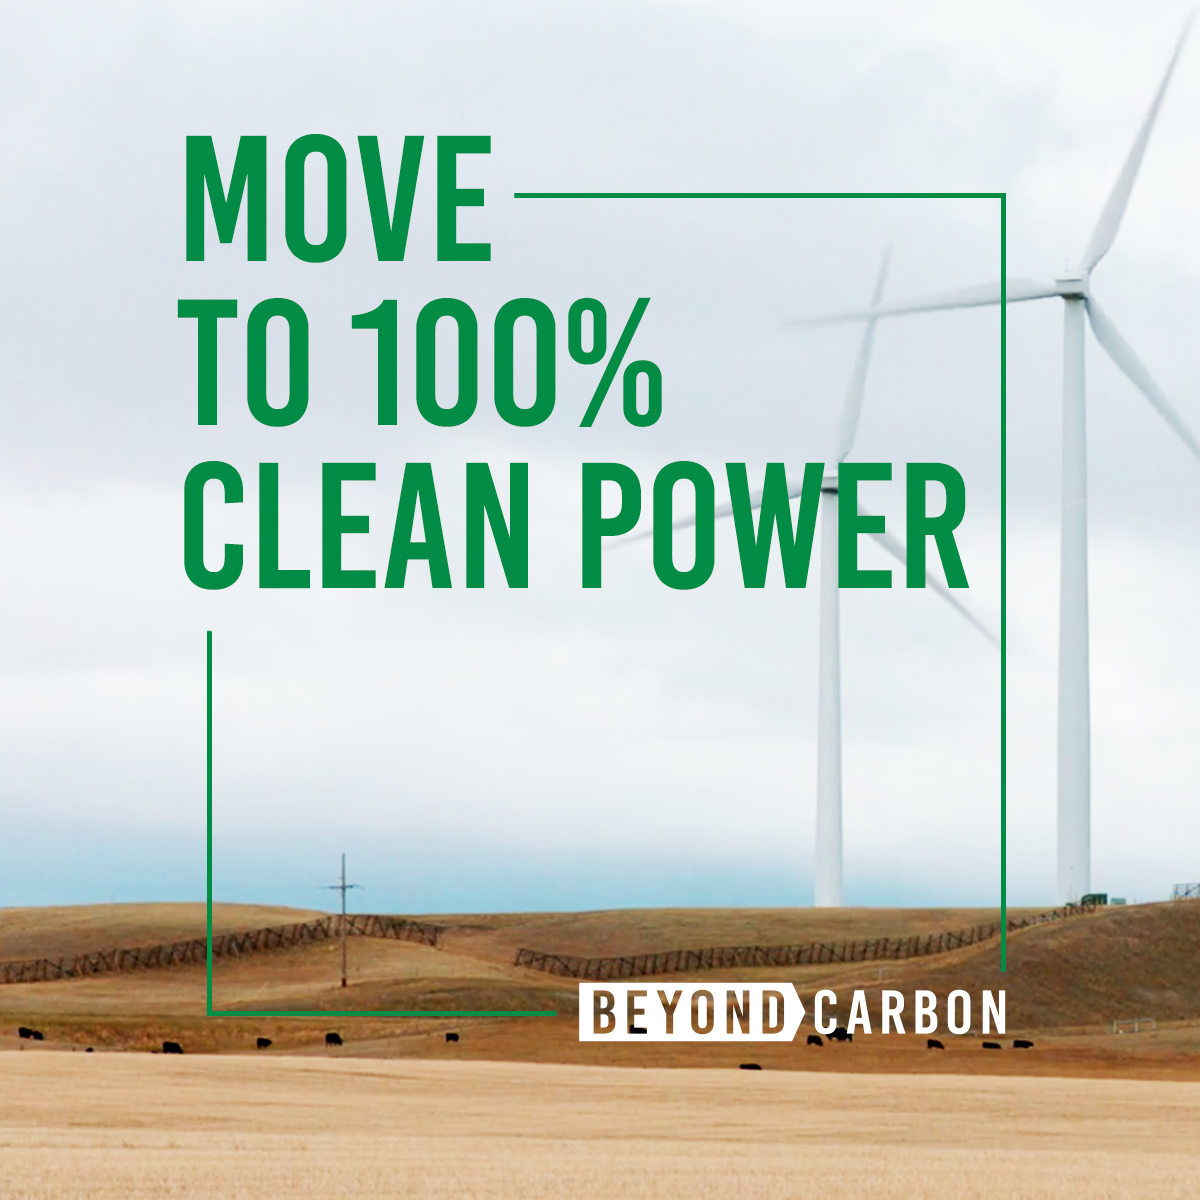 We're Moving Beyond Carbon Entirely, in Partnership With Bloomberg